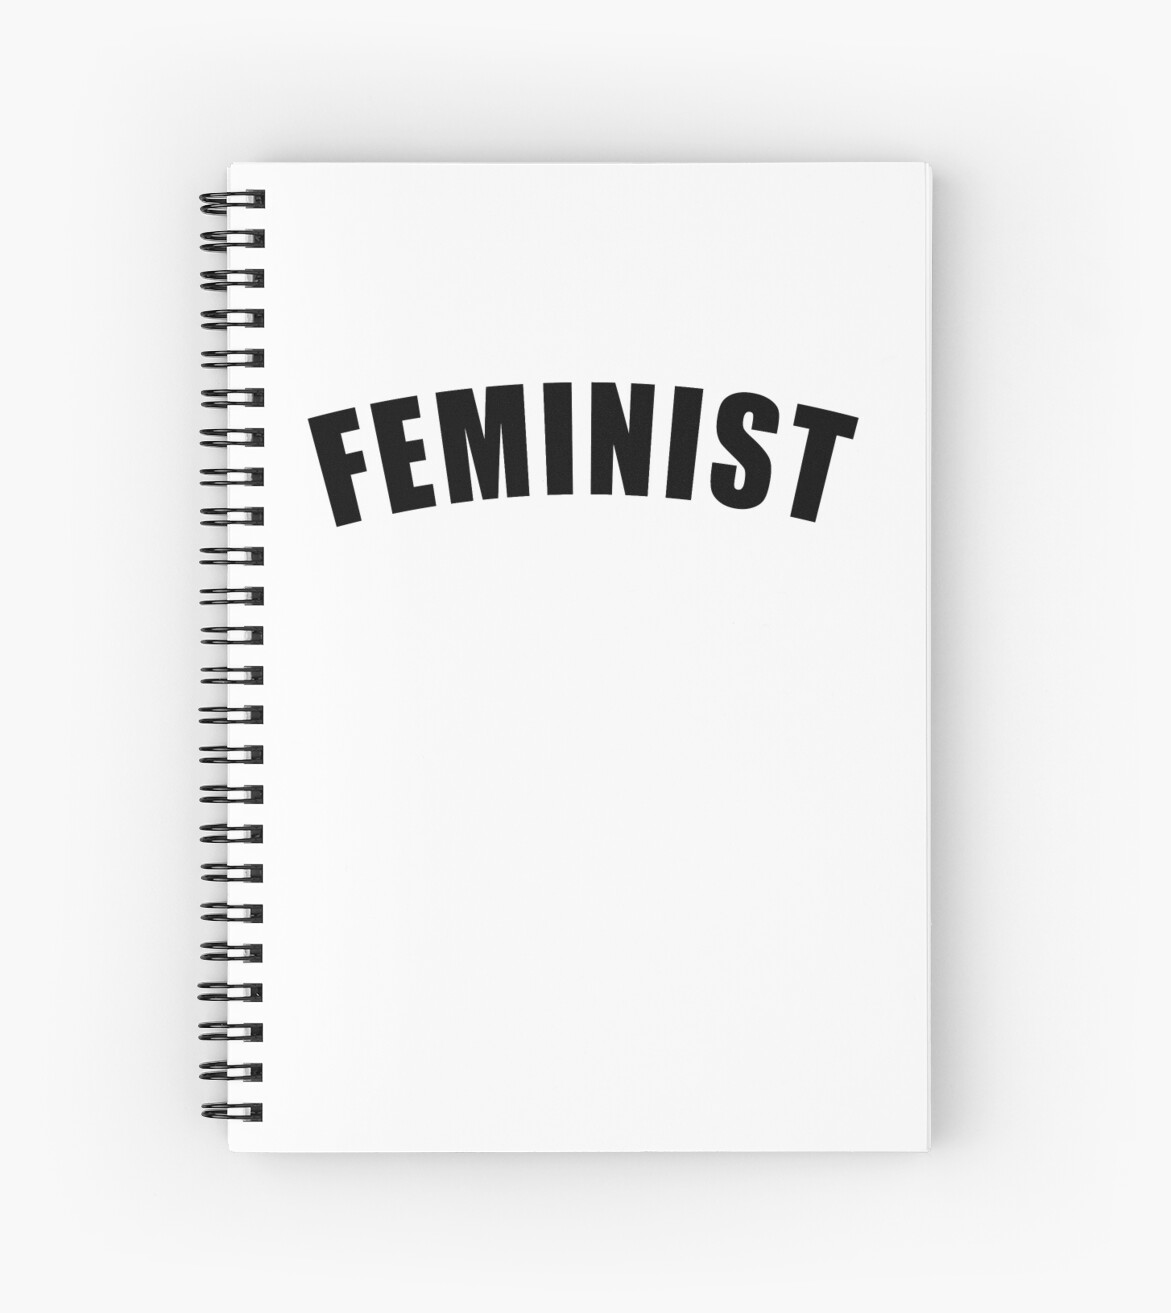 Feminist by Abigail Anderson